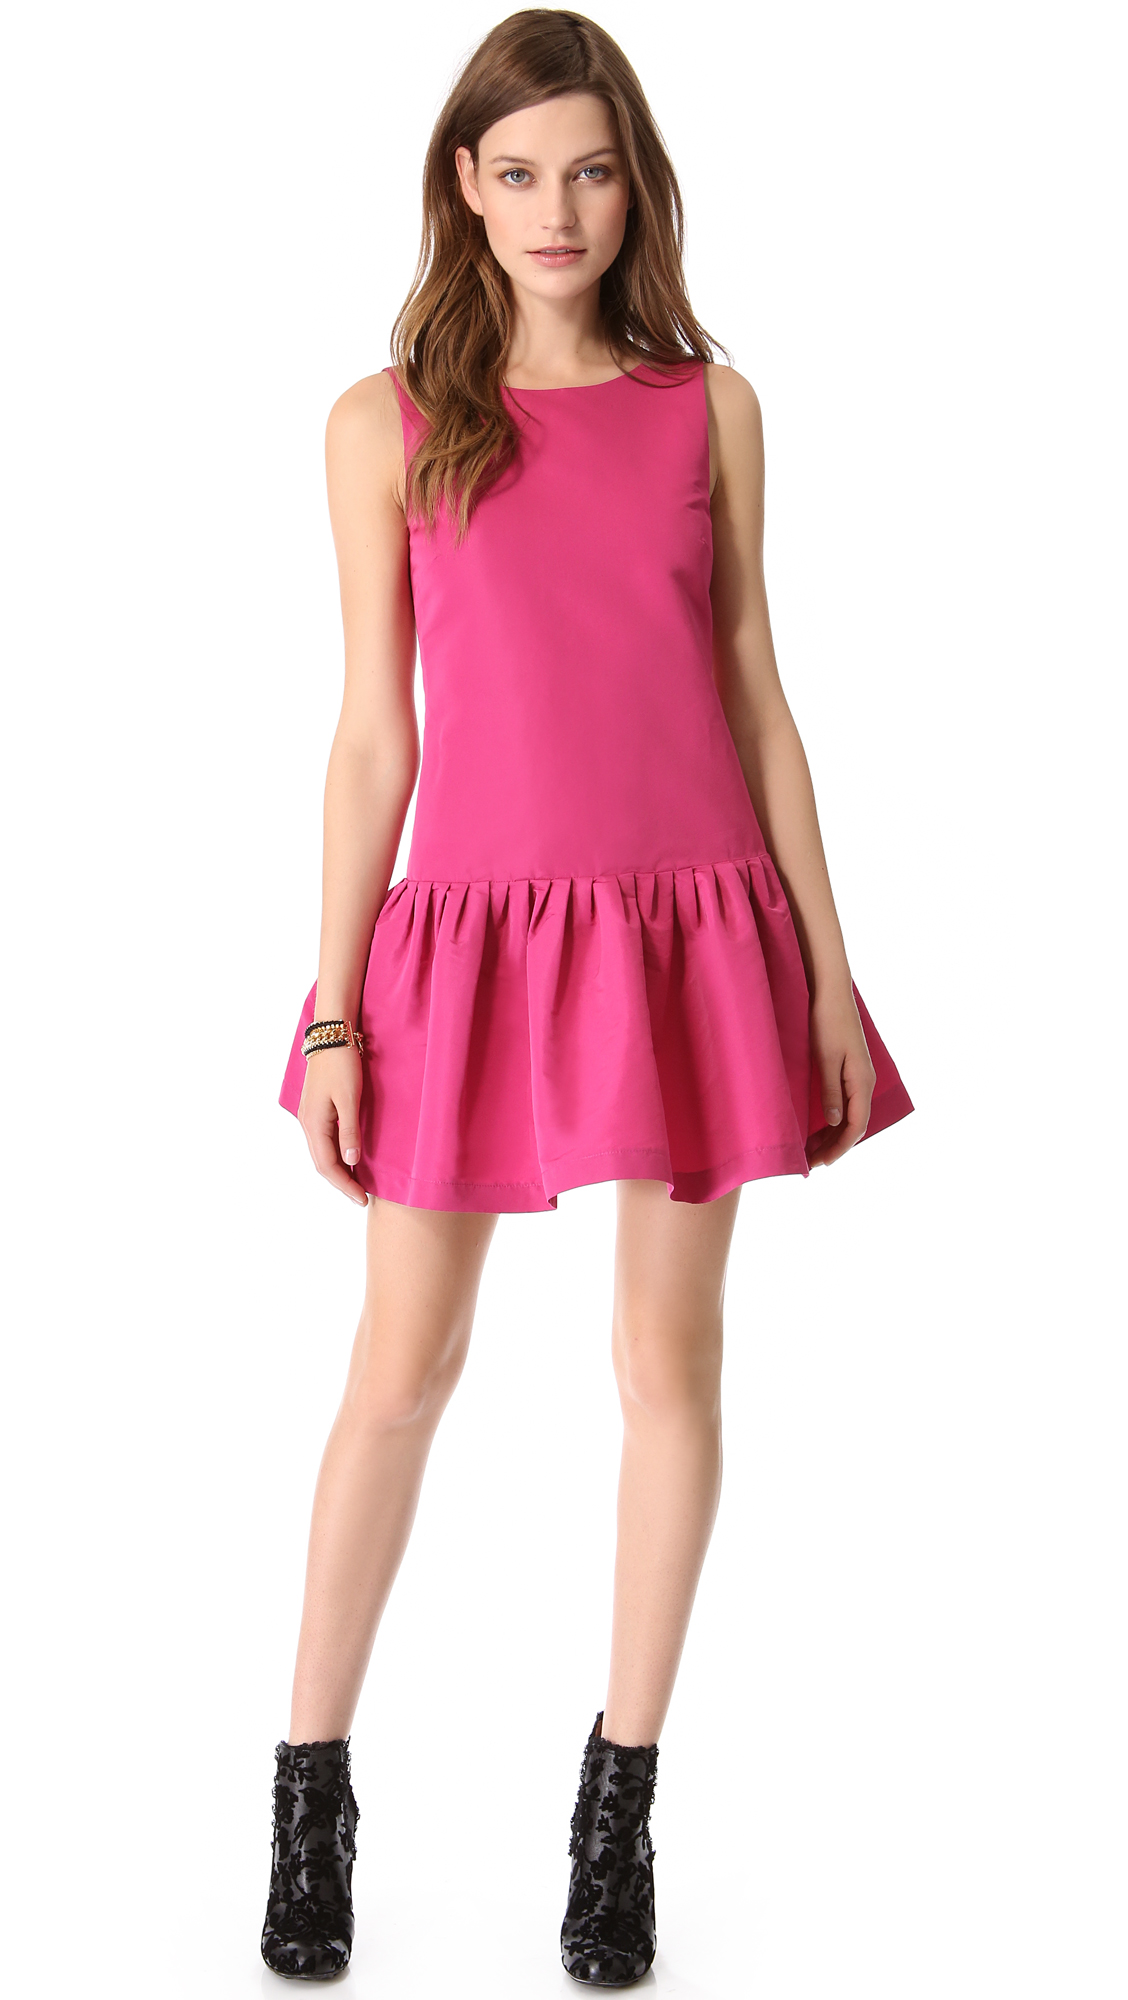 Red Valentino Spring 2016: Red Valentino Drop Waist Faille Dress In Pink